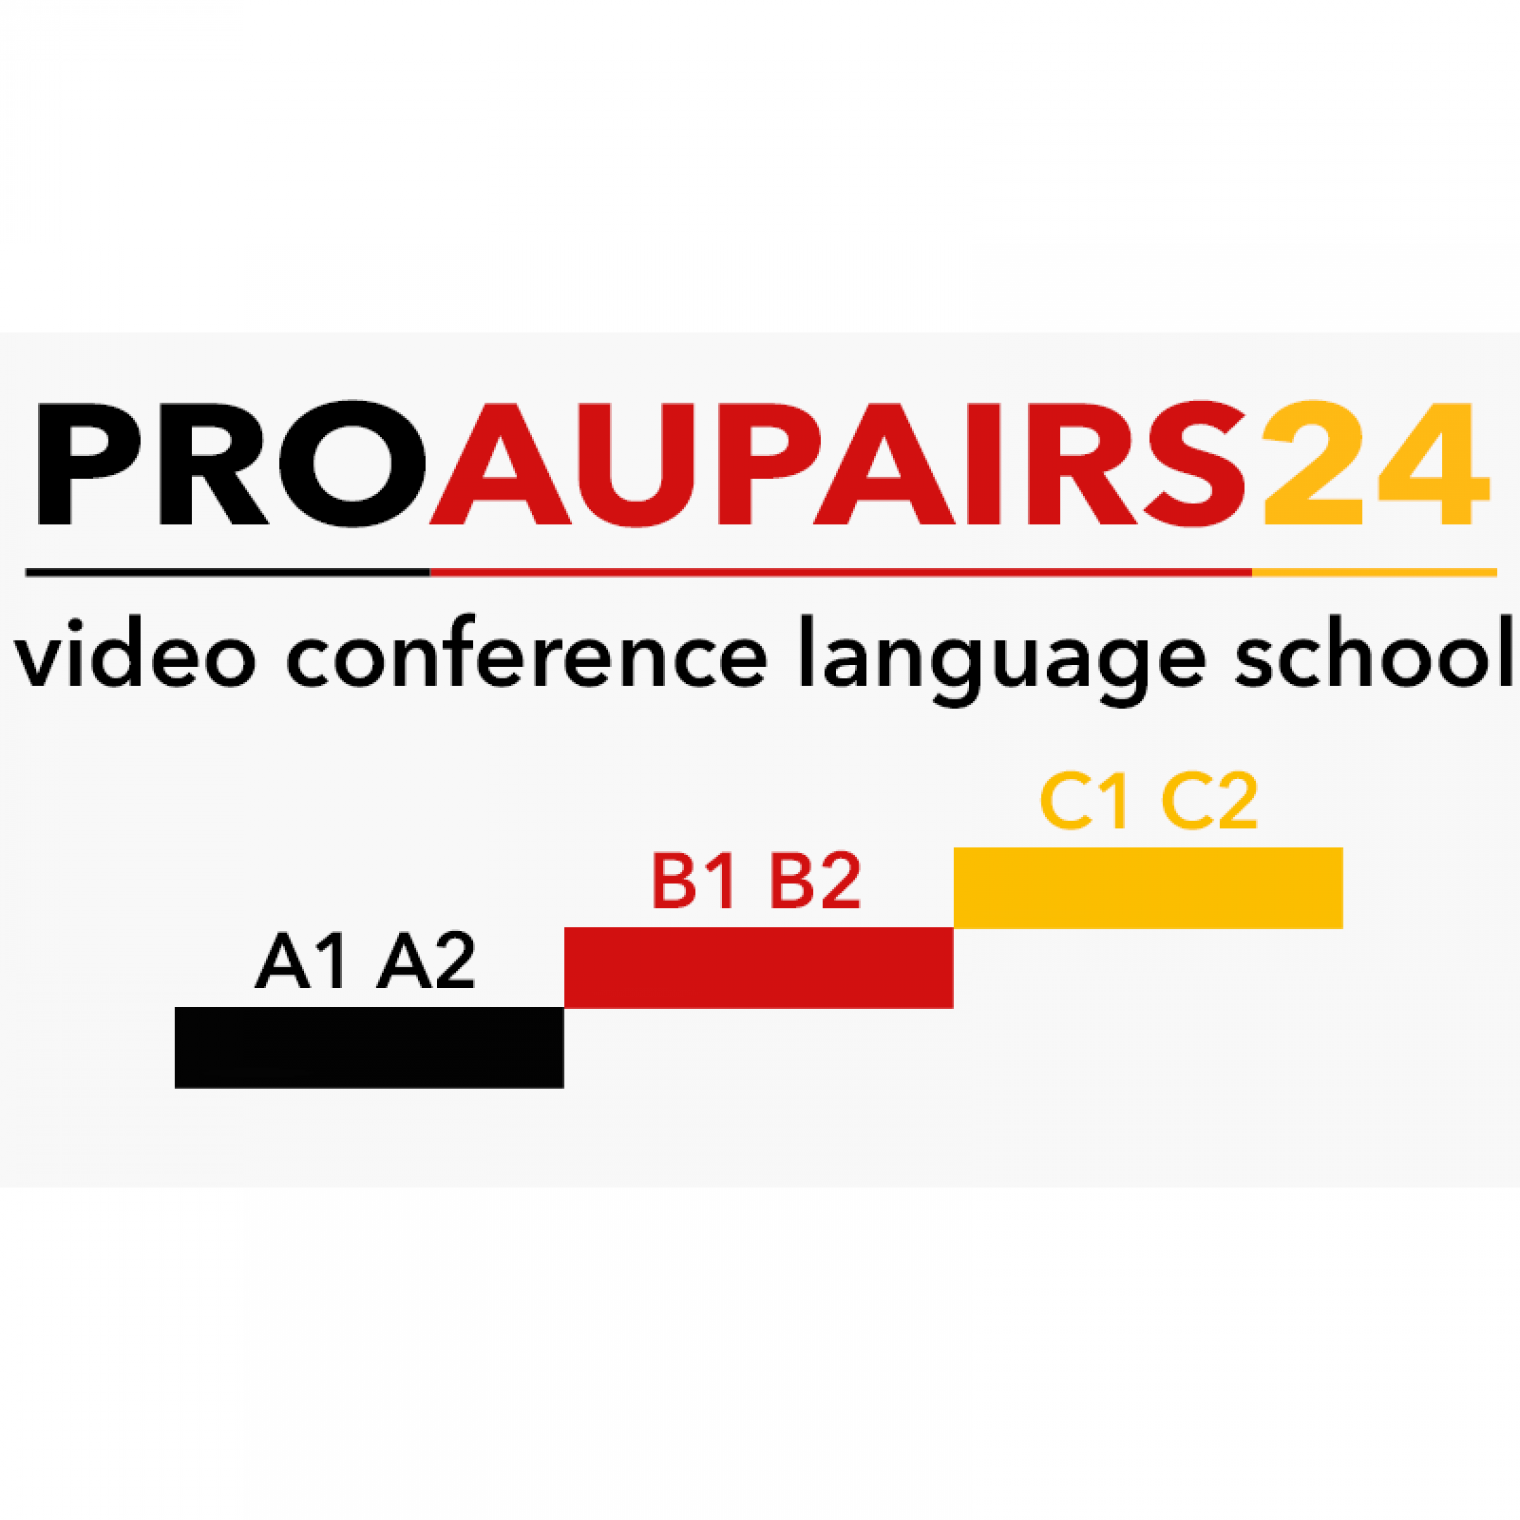 Welcome to our new Associate Member Proaupairs24